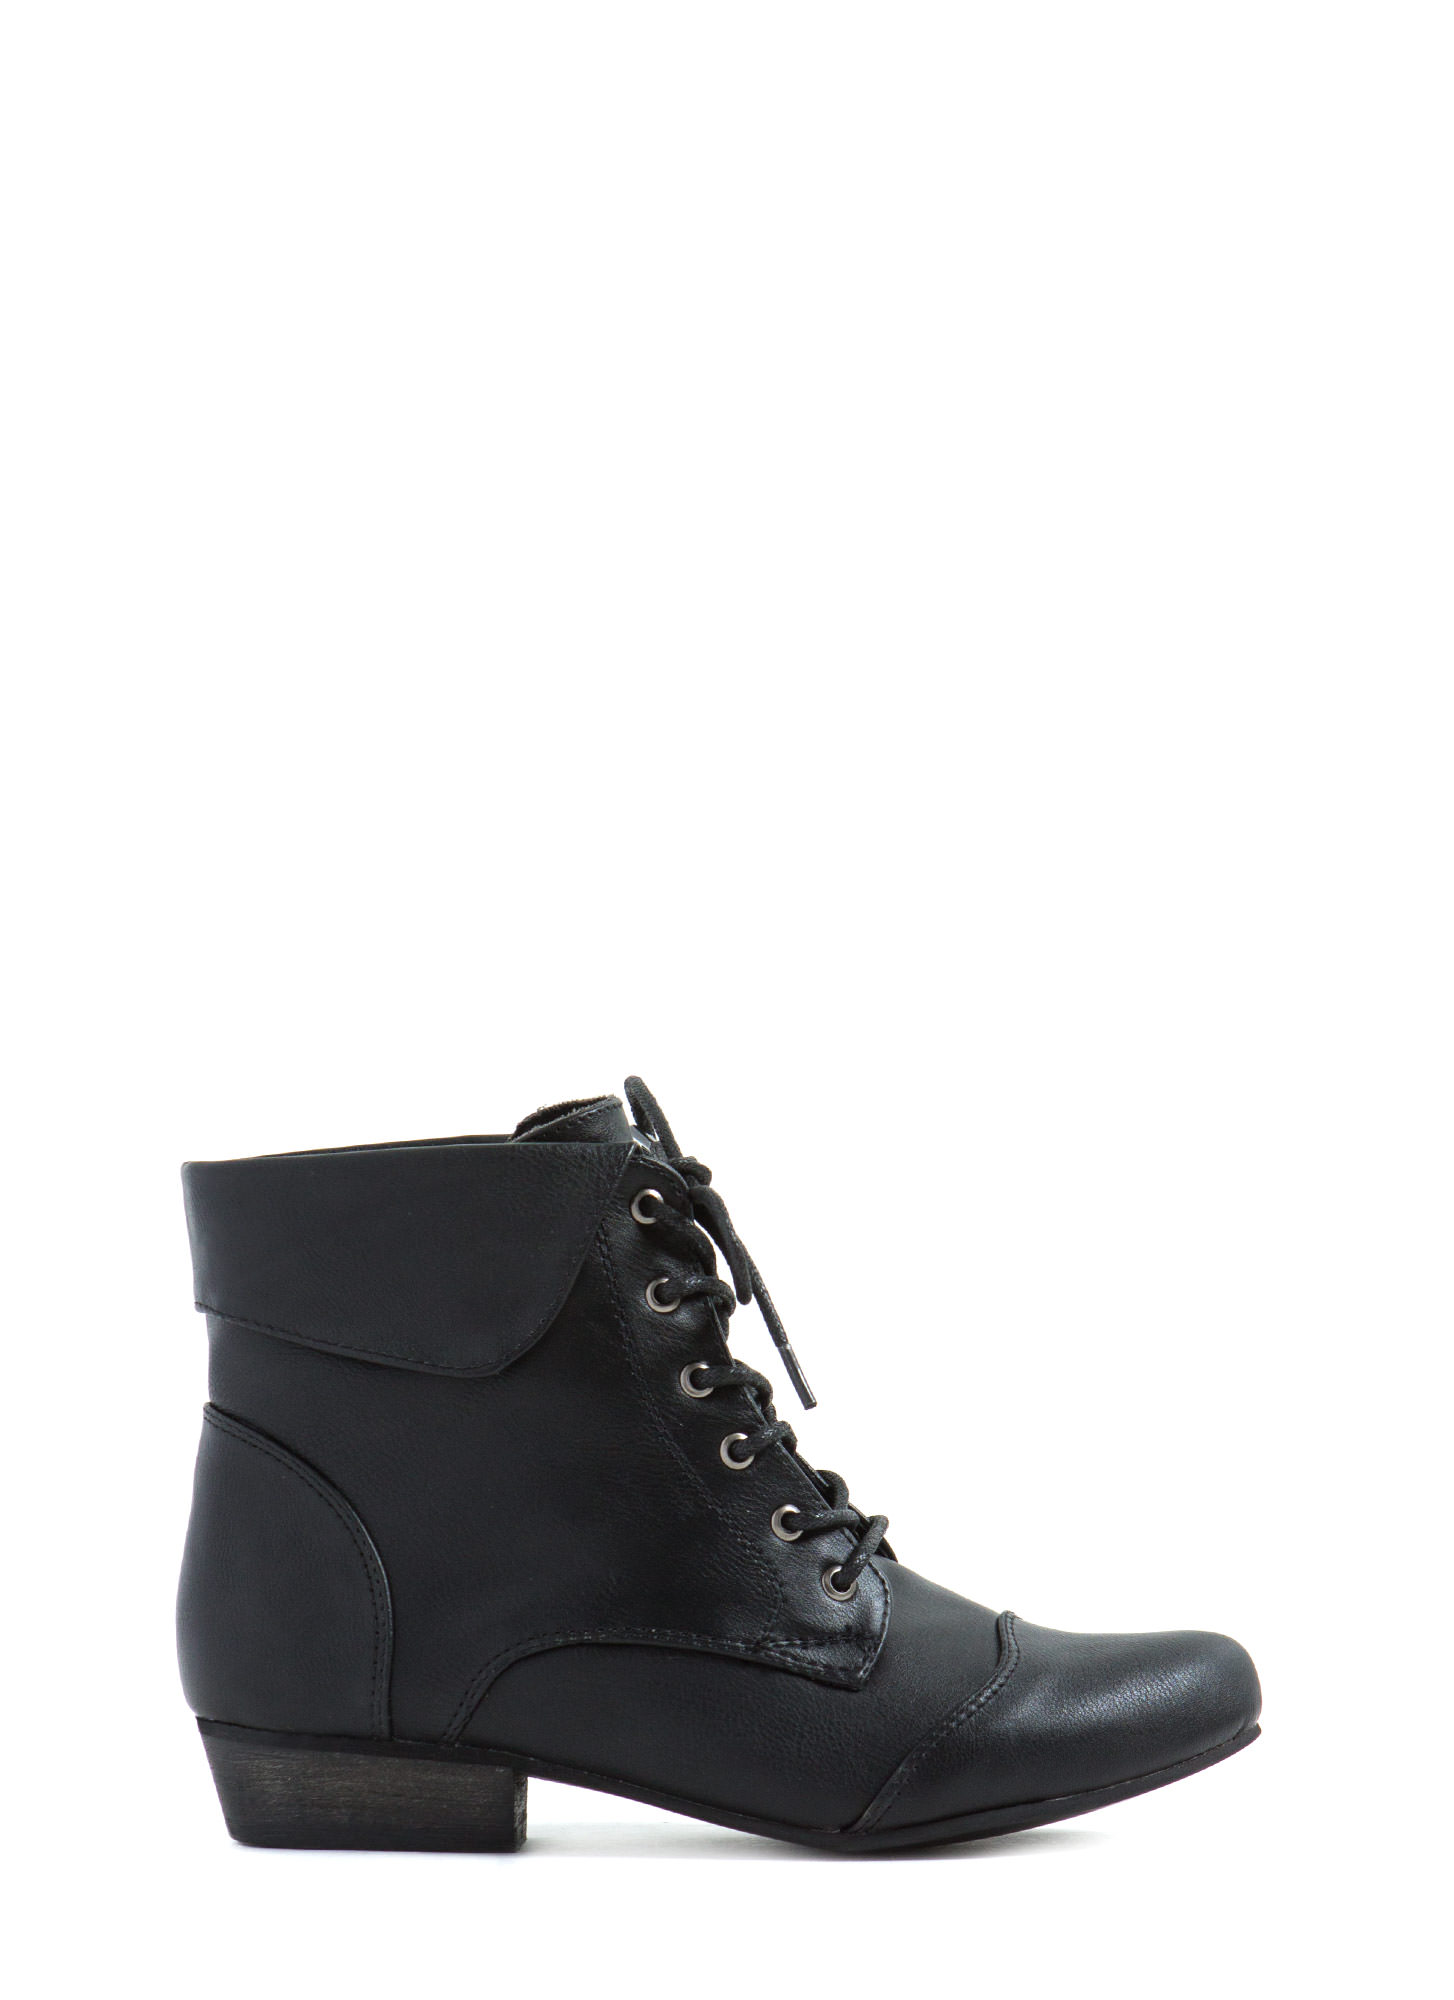 Black Lace Up Ankle Boots llbDC2LR